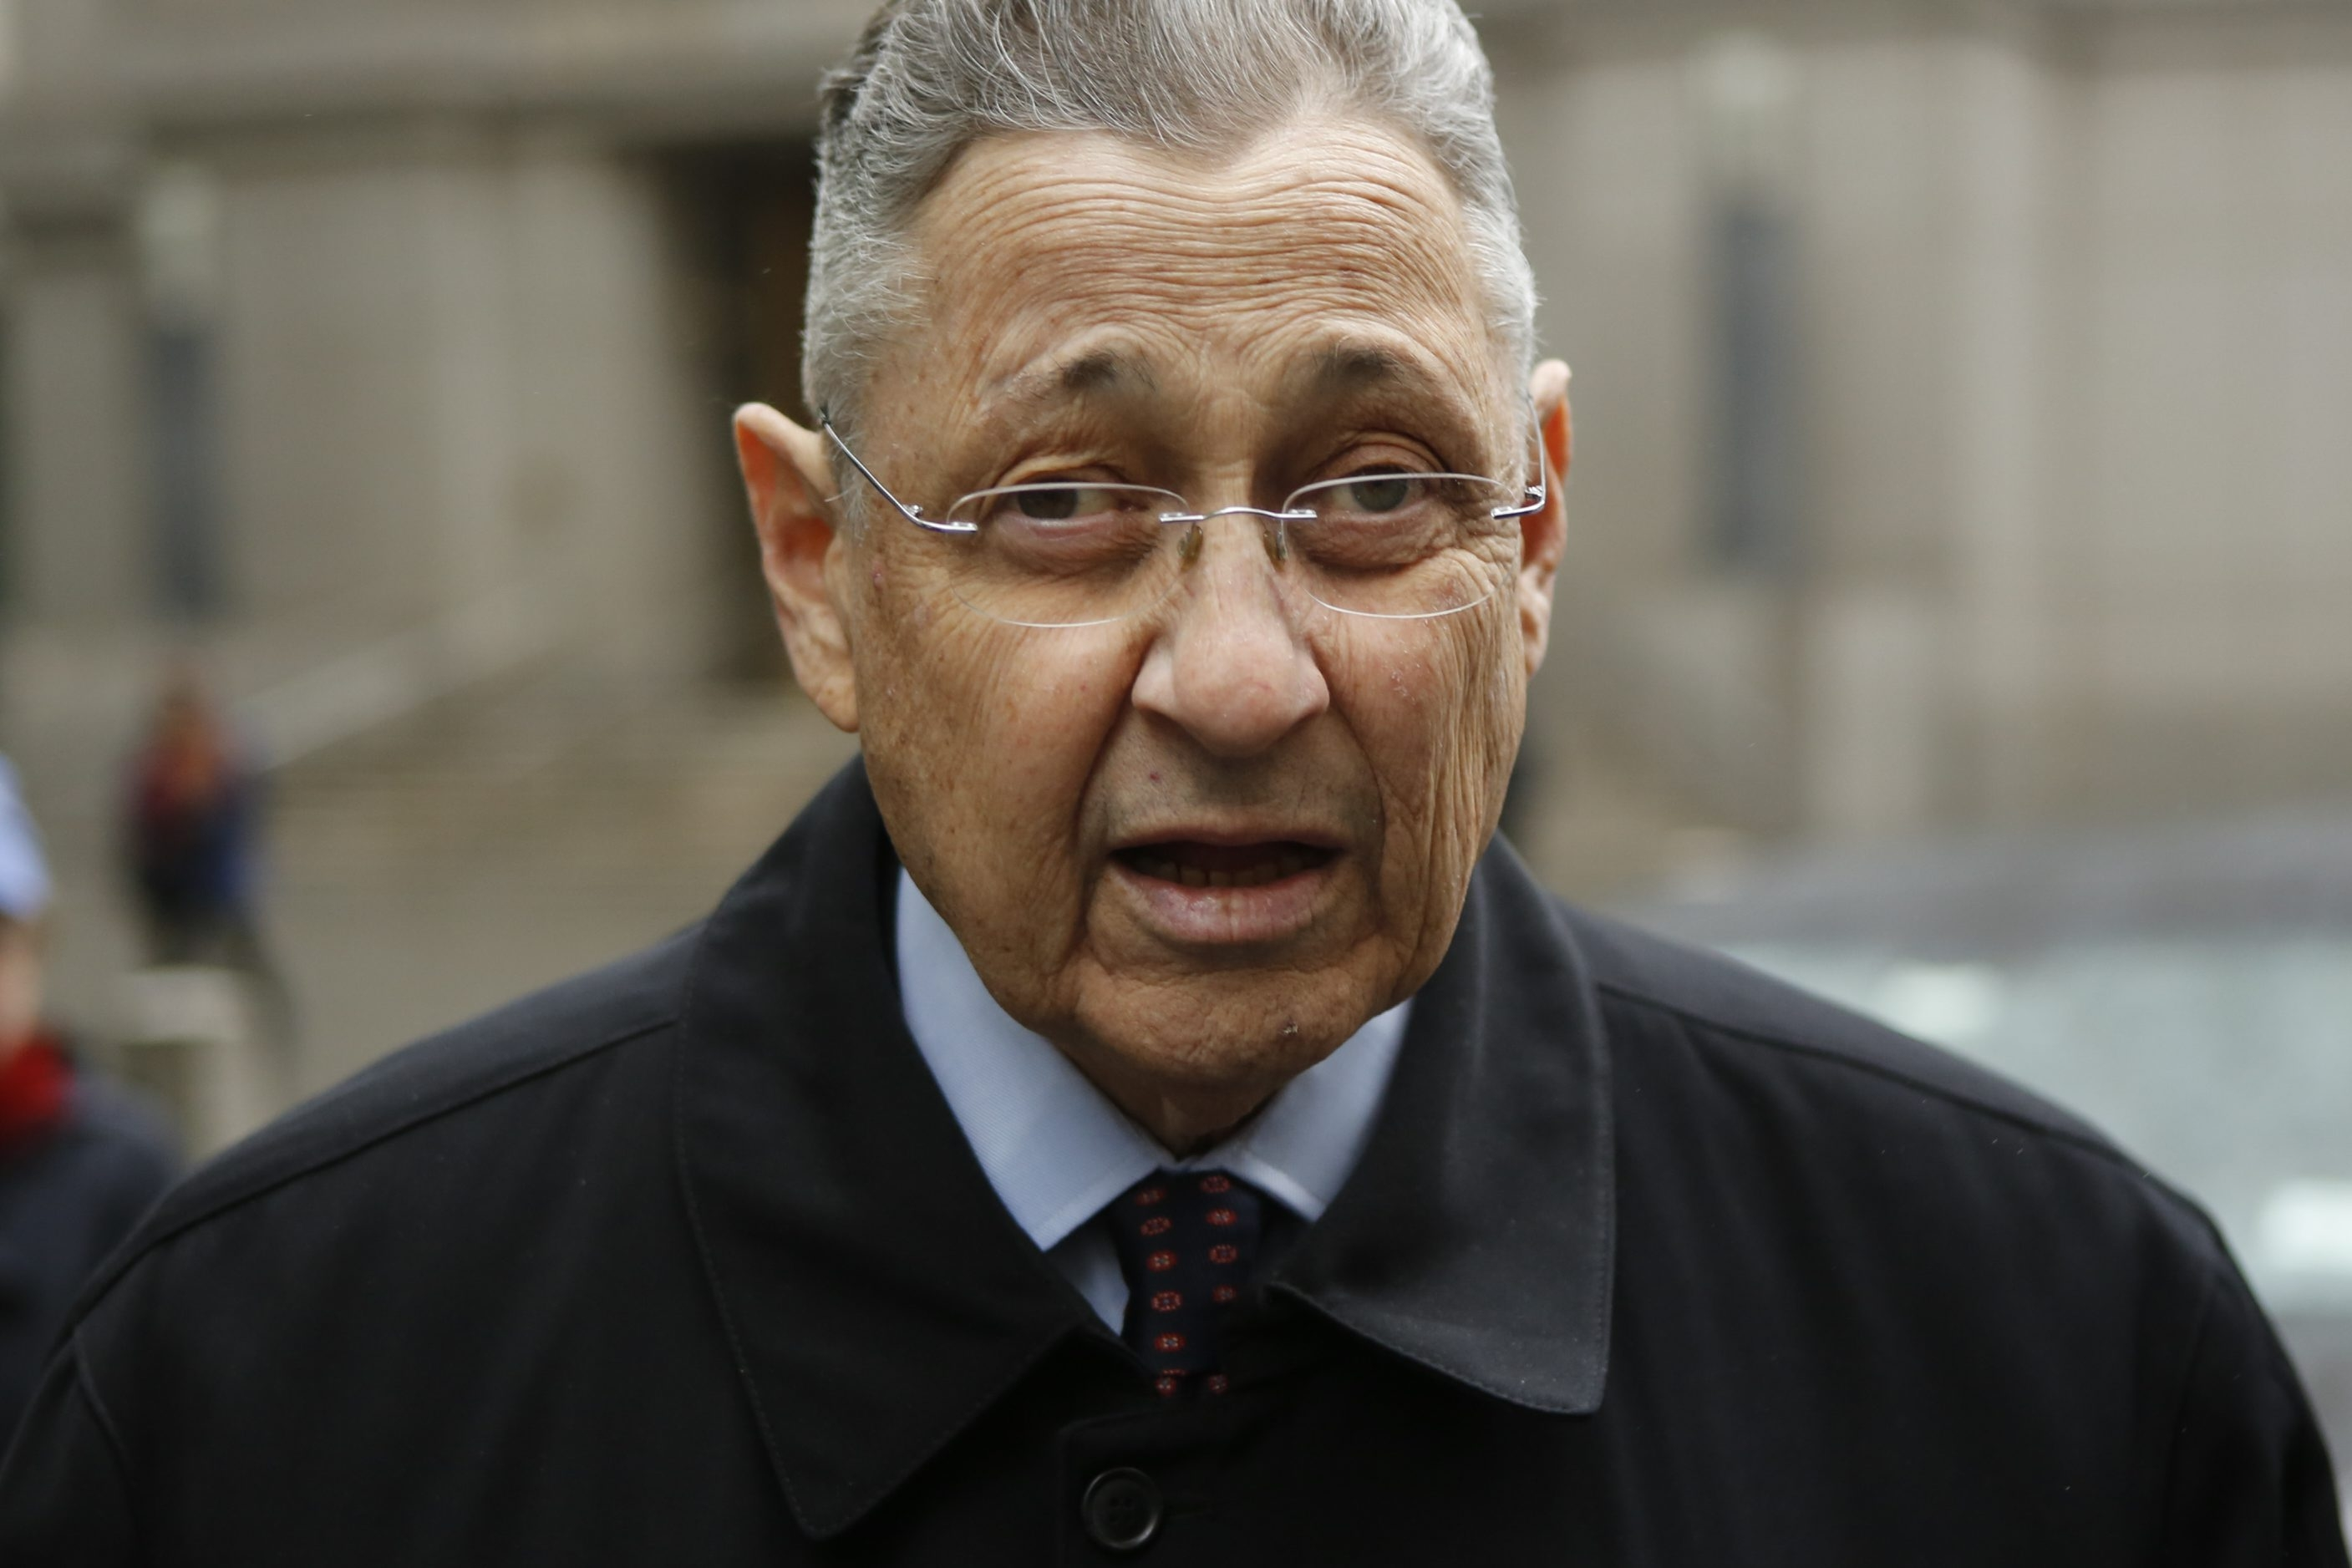 Former New York Assembly Speaker Sheldon Silver arrives at federal court in Lower Manhattan on May 3, 2016, in New York City.  (Getty Images)